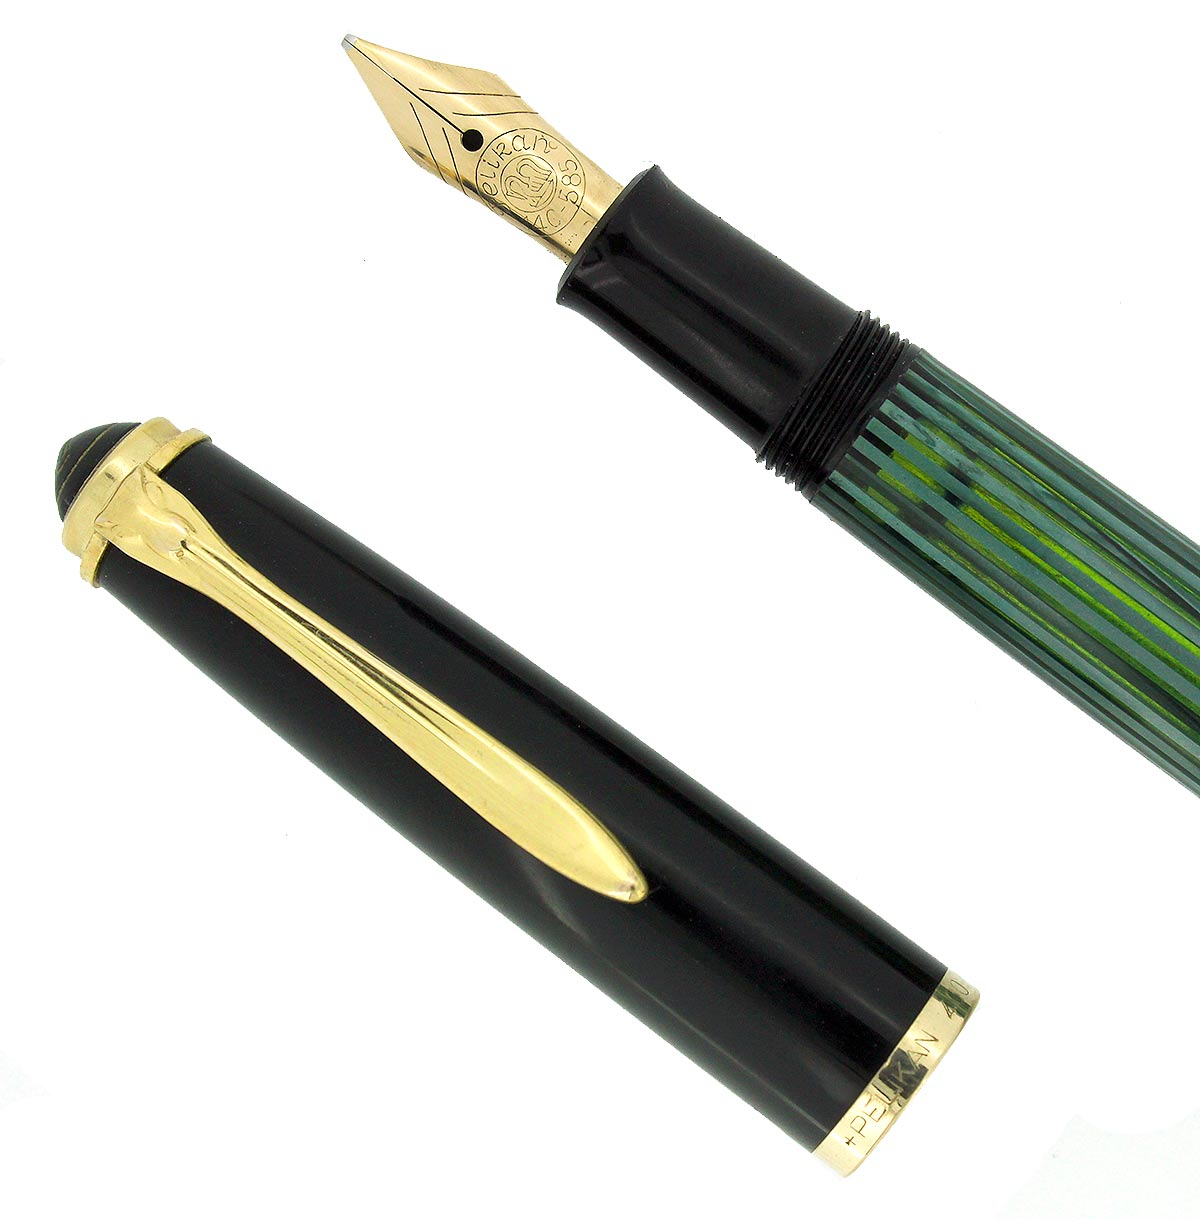 CIRCA 1950s PELIKAN 400NN FOUNTAIN PEN GREEN STRIATED CELLULOID B-BBB NIB RESTORED OFFERED BY ANTIQUE DIGGER